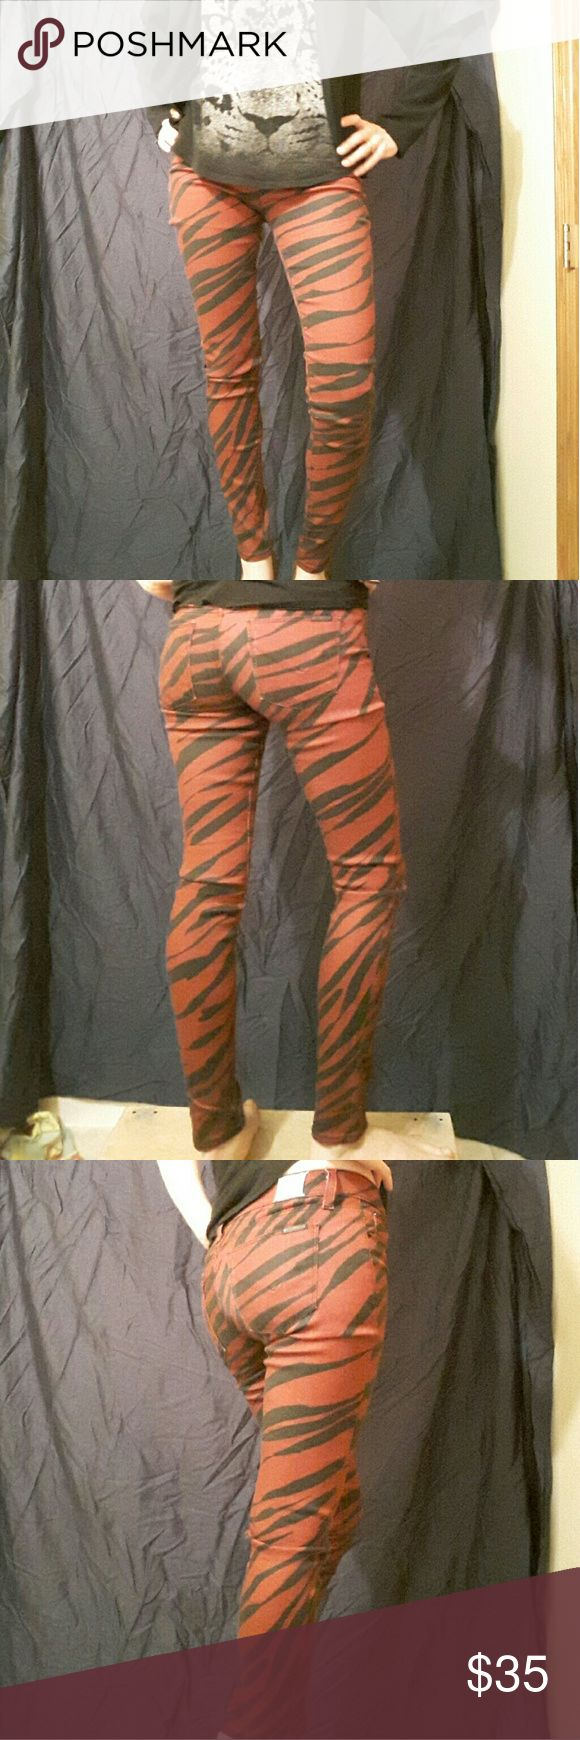 """Red and black Hudson skinny jeans How bad@$$ are these?! Seriously rocking red and black skinny Hudson jeans. These pants are a size 26 and they fit like a size 4. Inseam is 29"""". Any questions, just ask. Bundle and save! Hudson Jeans Pants"""